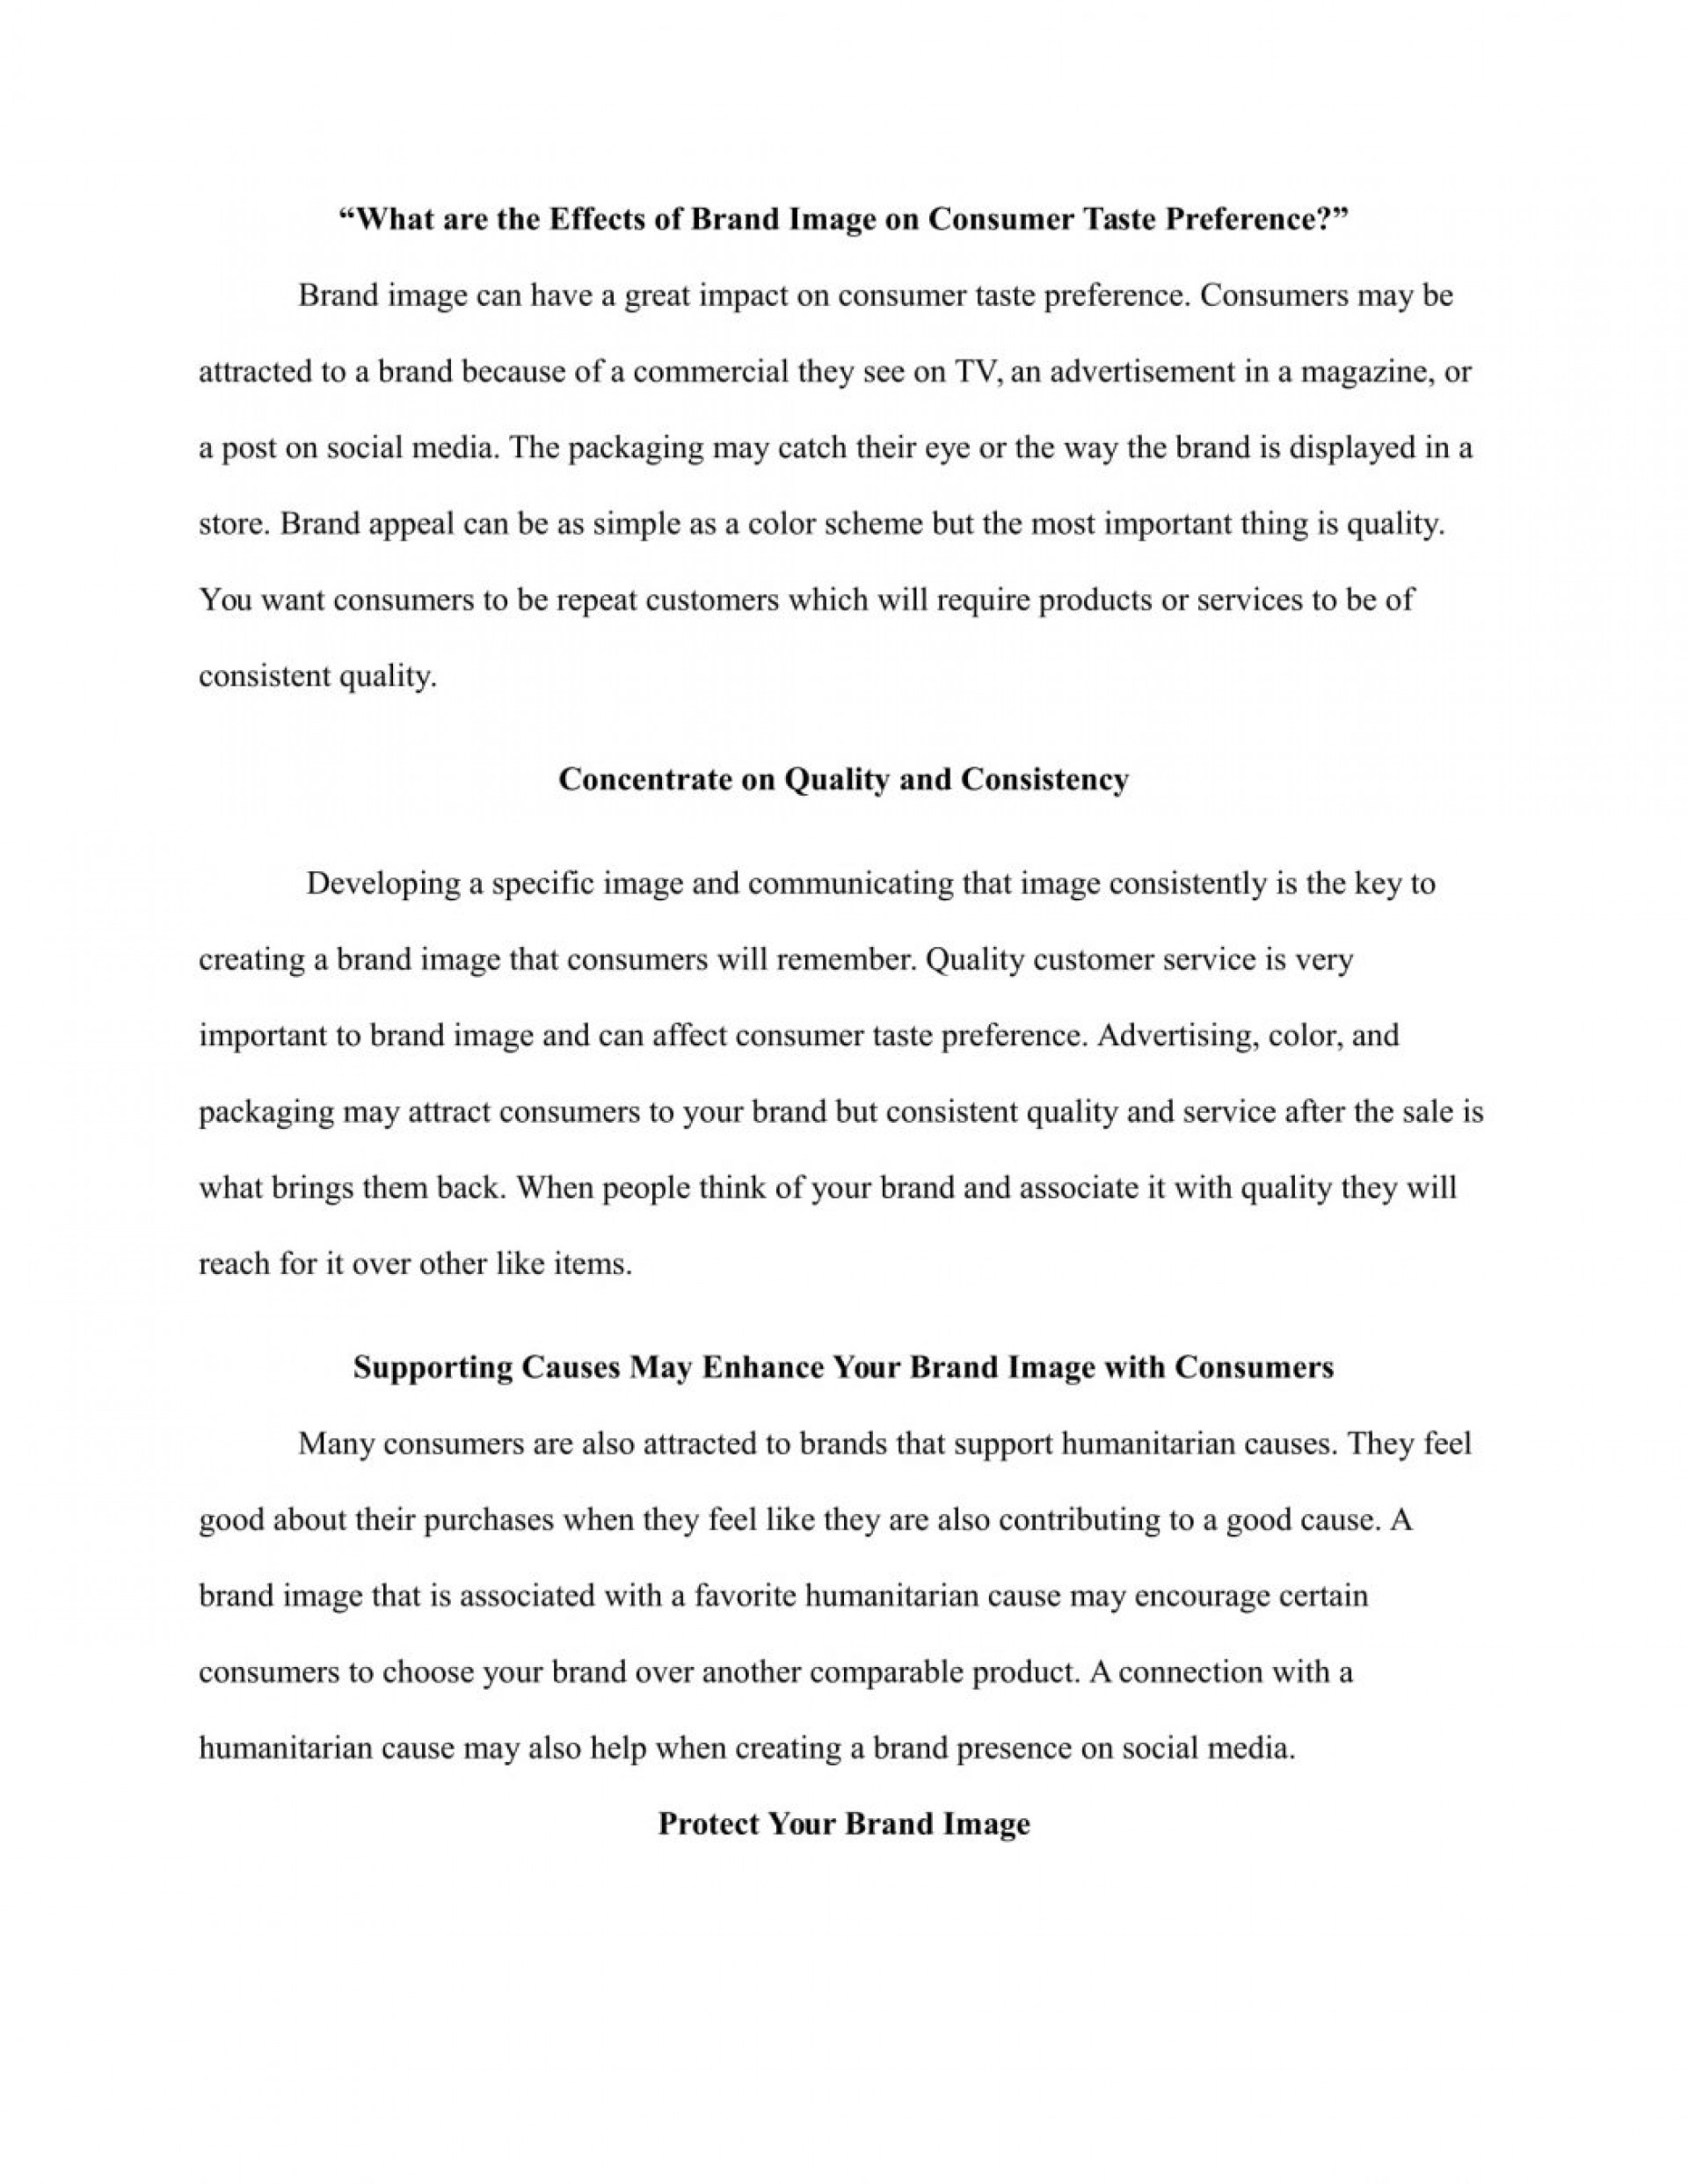 006 Essay File Expository Sample Jpg Volunteer Service Exploratory Topicss Sam Introduction Free Research Thesis 1048x1356 Awful Topics About Medicine For College Sports 1920